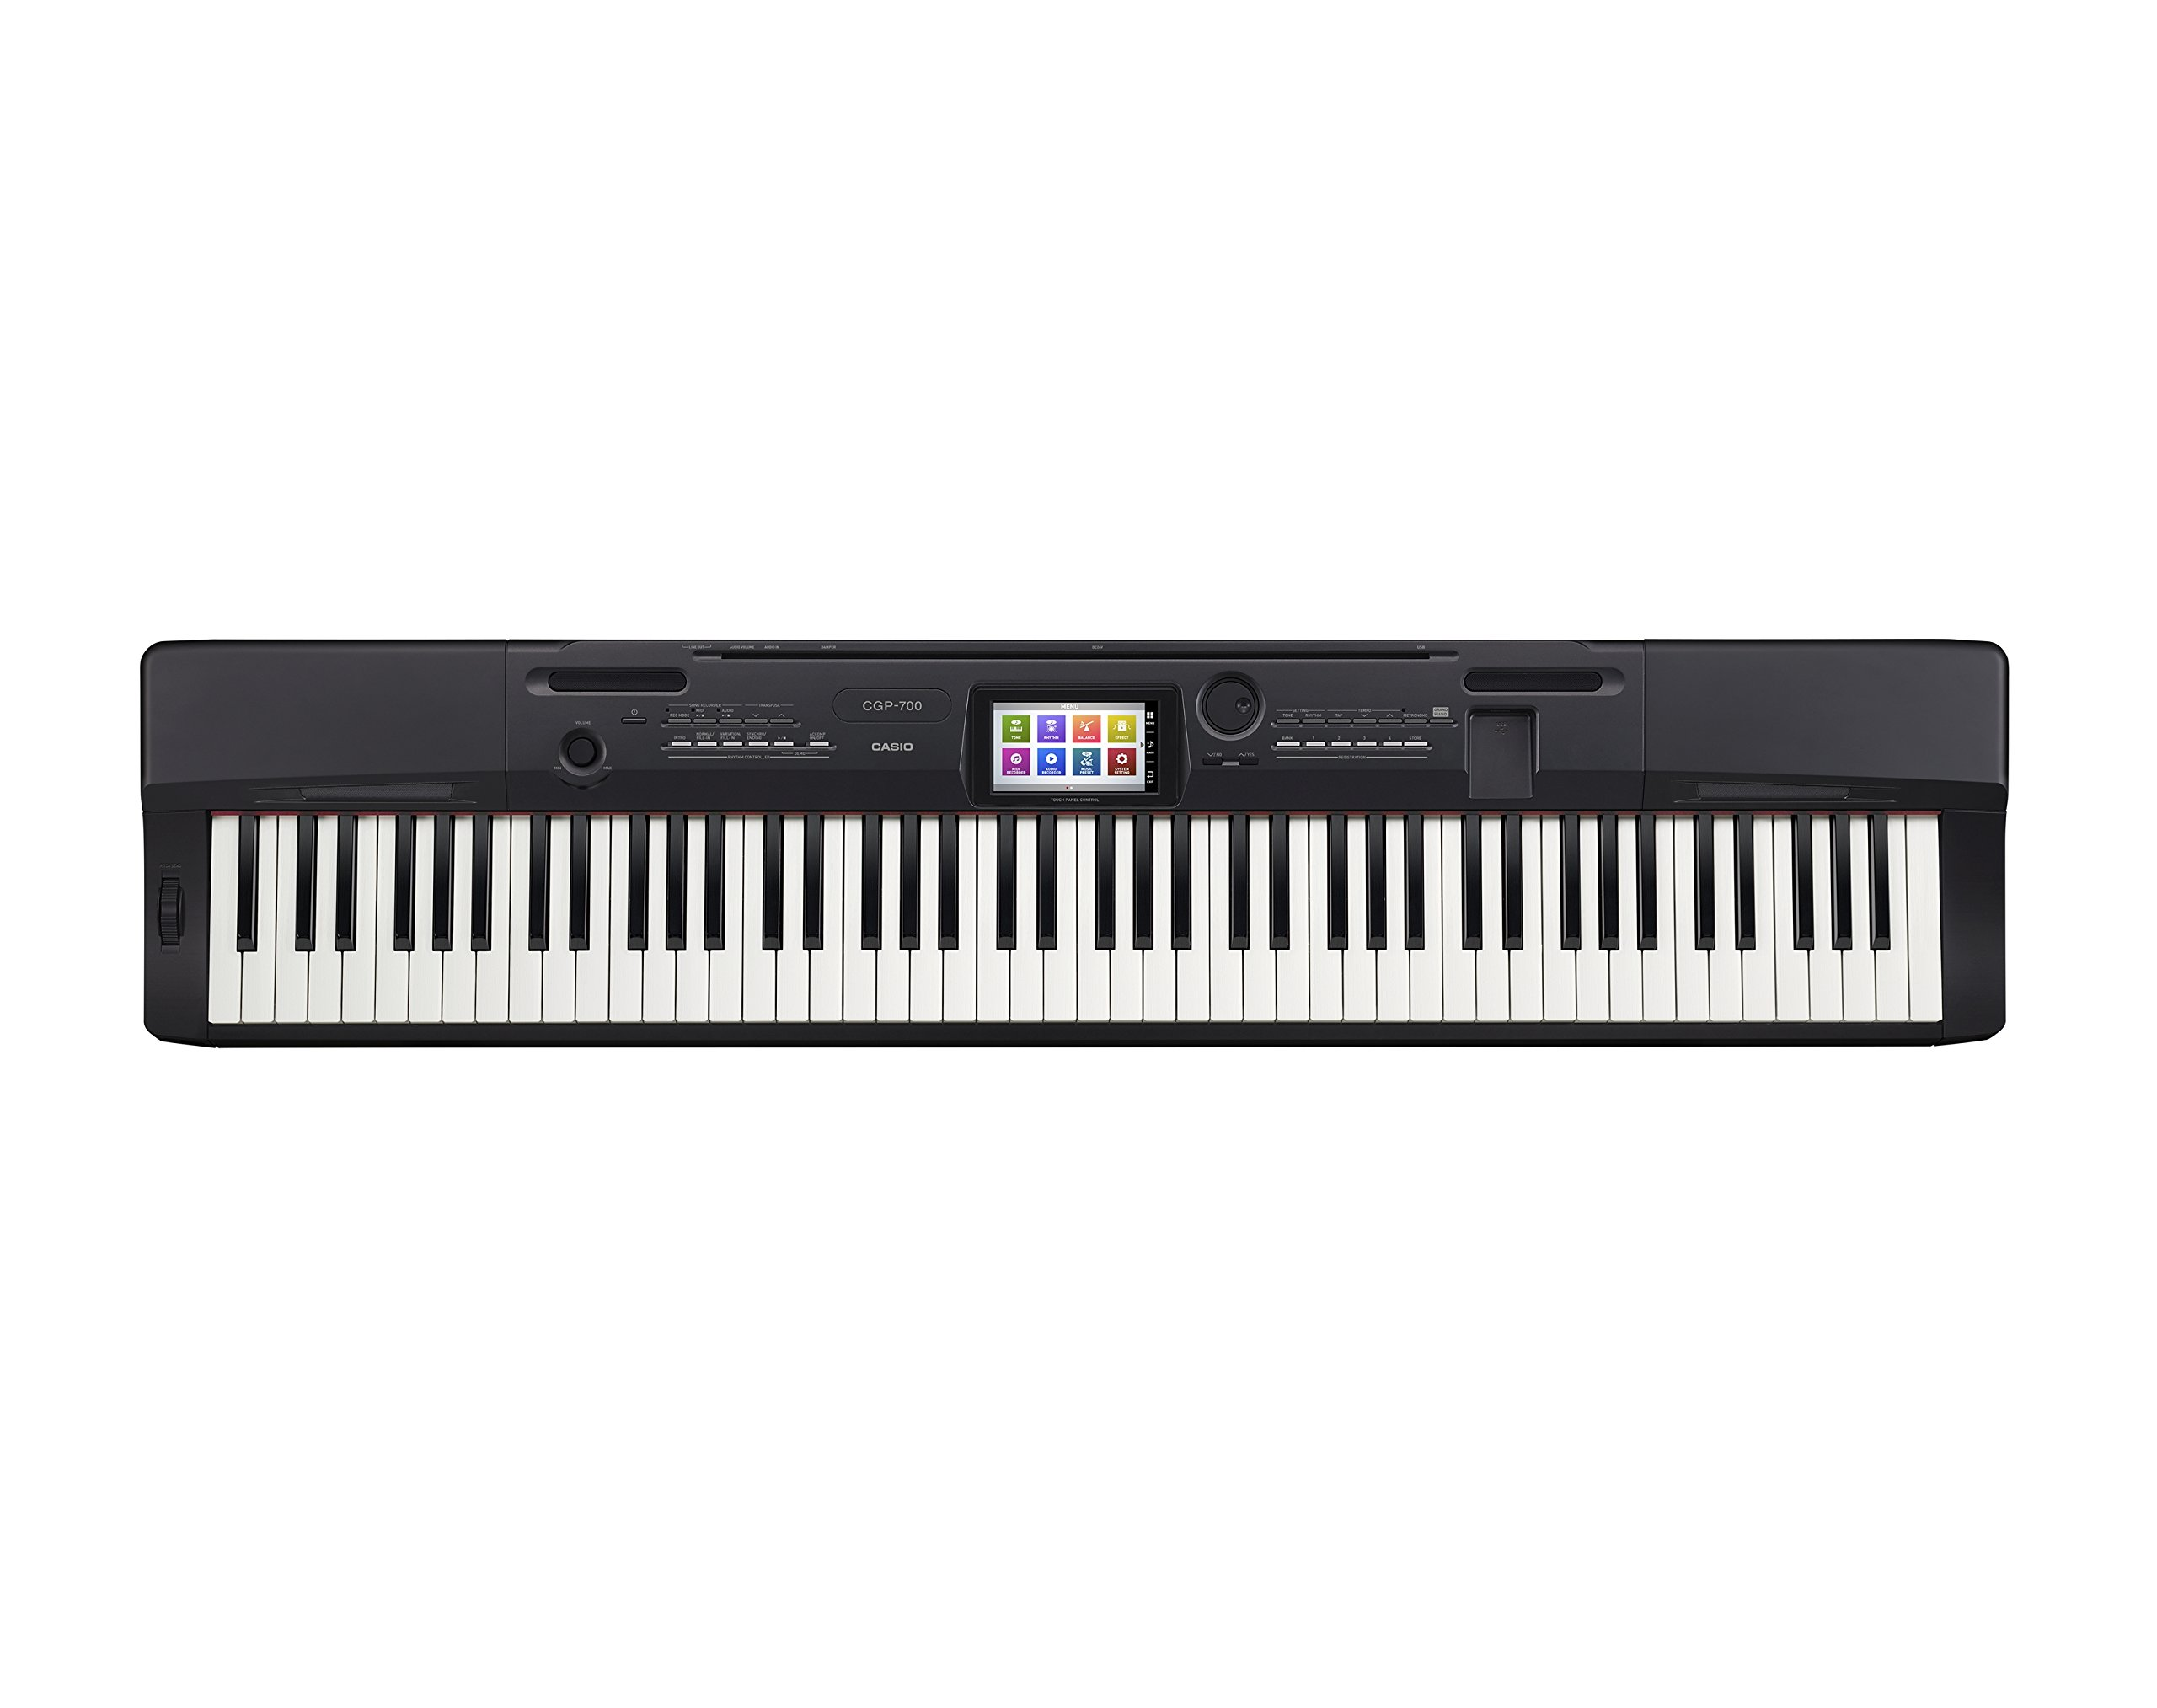 Casio CGP-700BK 88-Key Compact Grand Digital Piano Bundle with Furniture-Style Bench, Dust Cover, Instructional DVD, Instructional Book, Sustain Pedal, and Polishing Cloth - Black by Casio (Image #3)